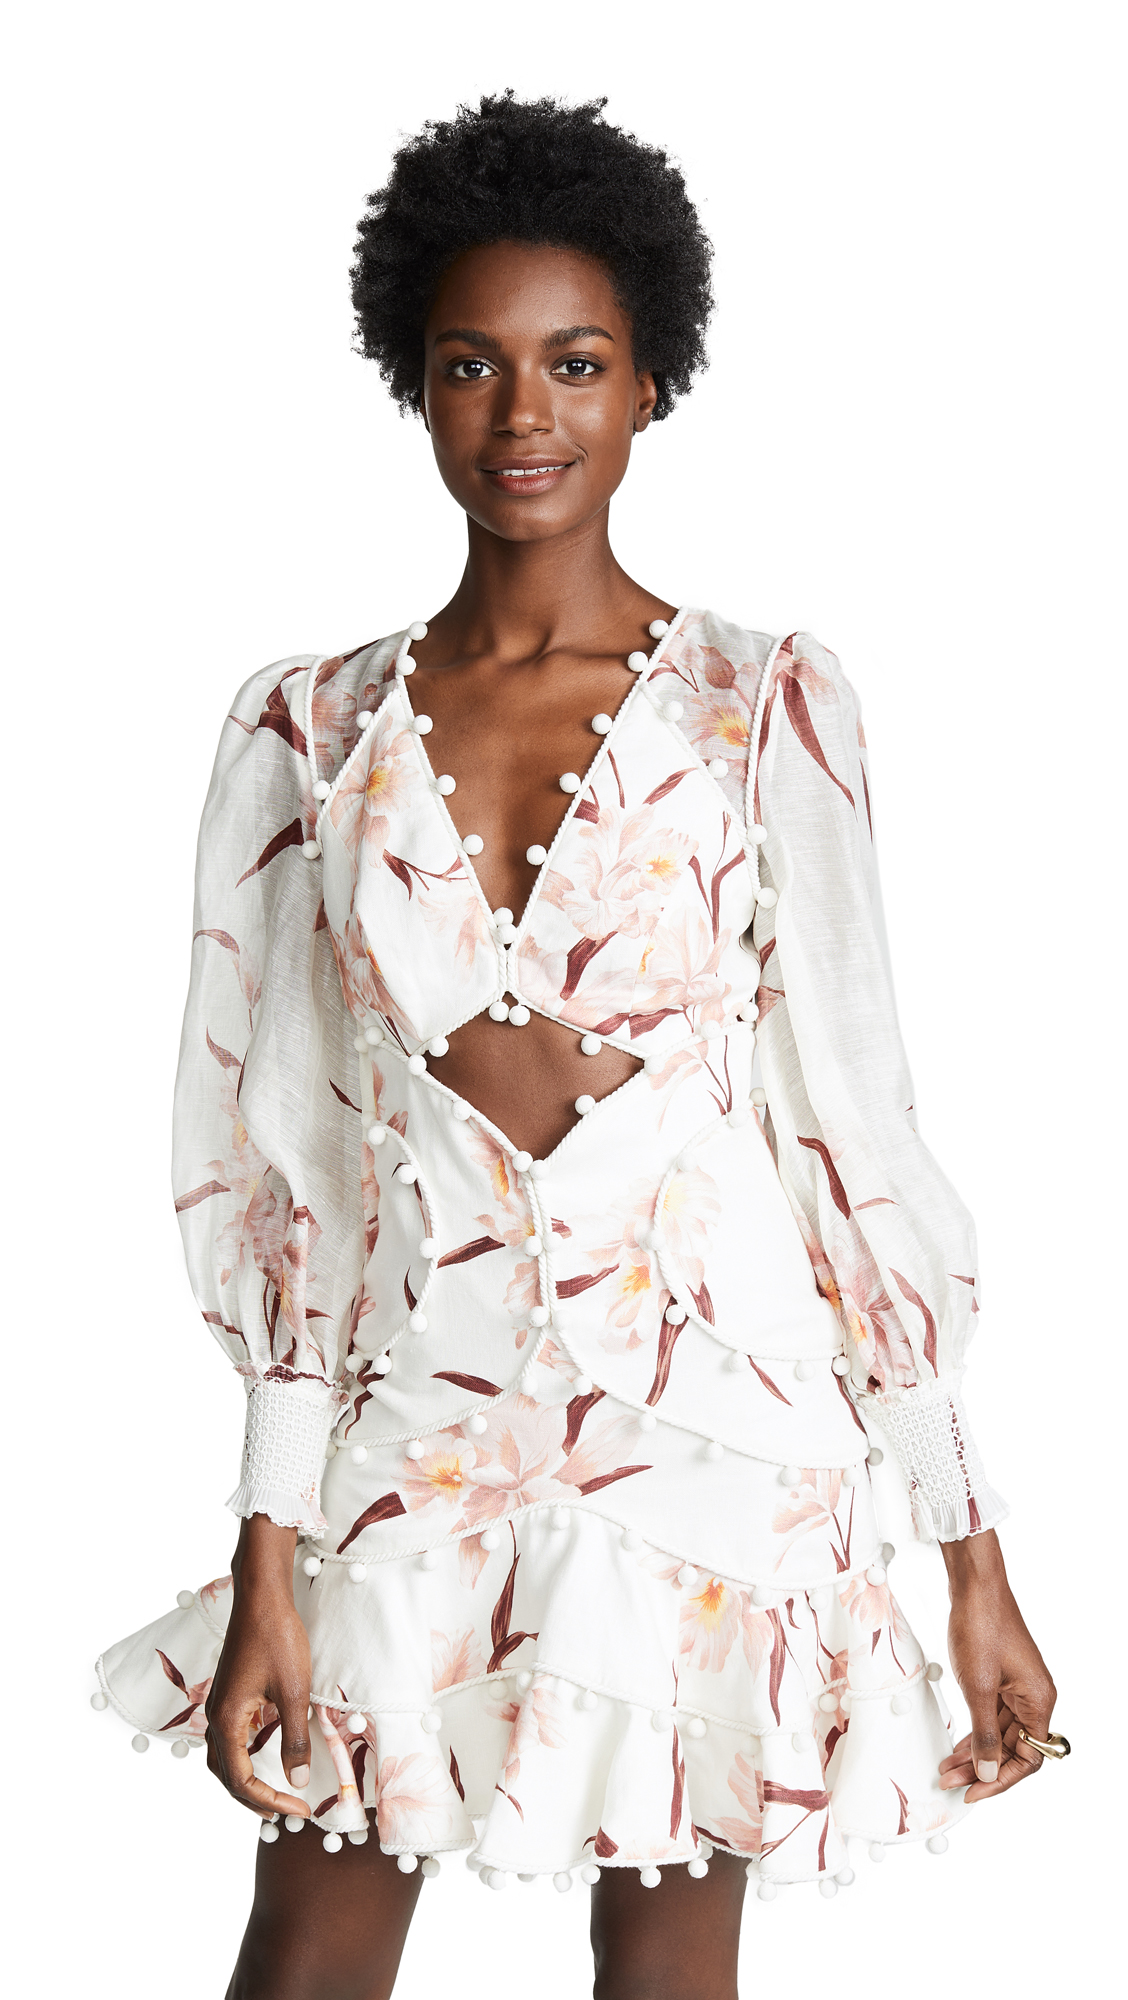 ZIMMERMANN Corsage Pompom-Embellished Cutout Floral-Print Linen Mini Dress in Ivory/Peach Orchid